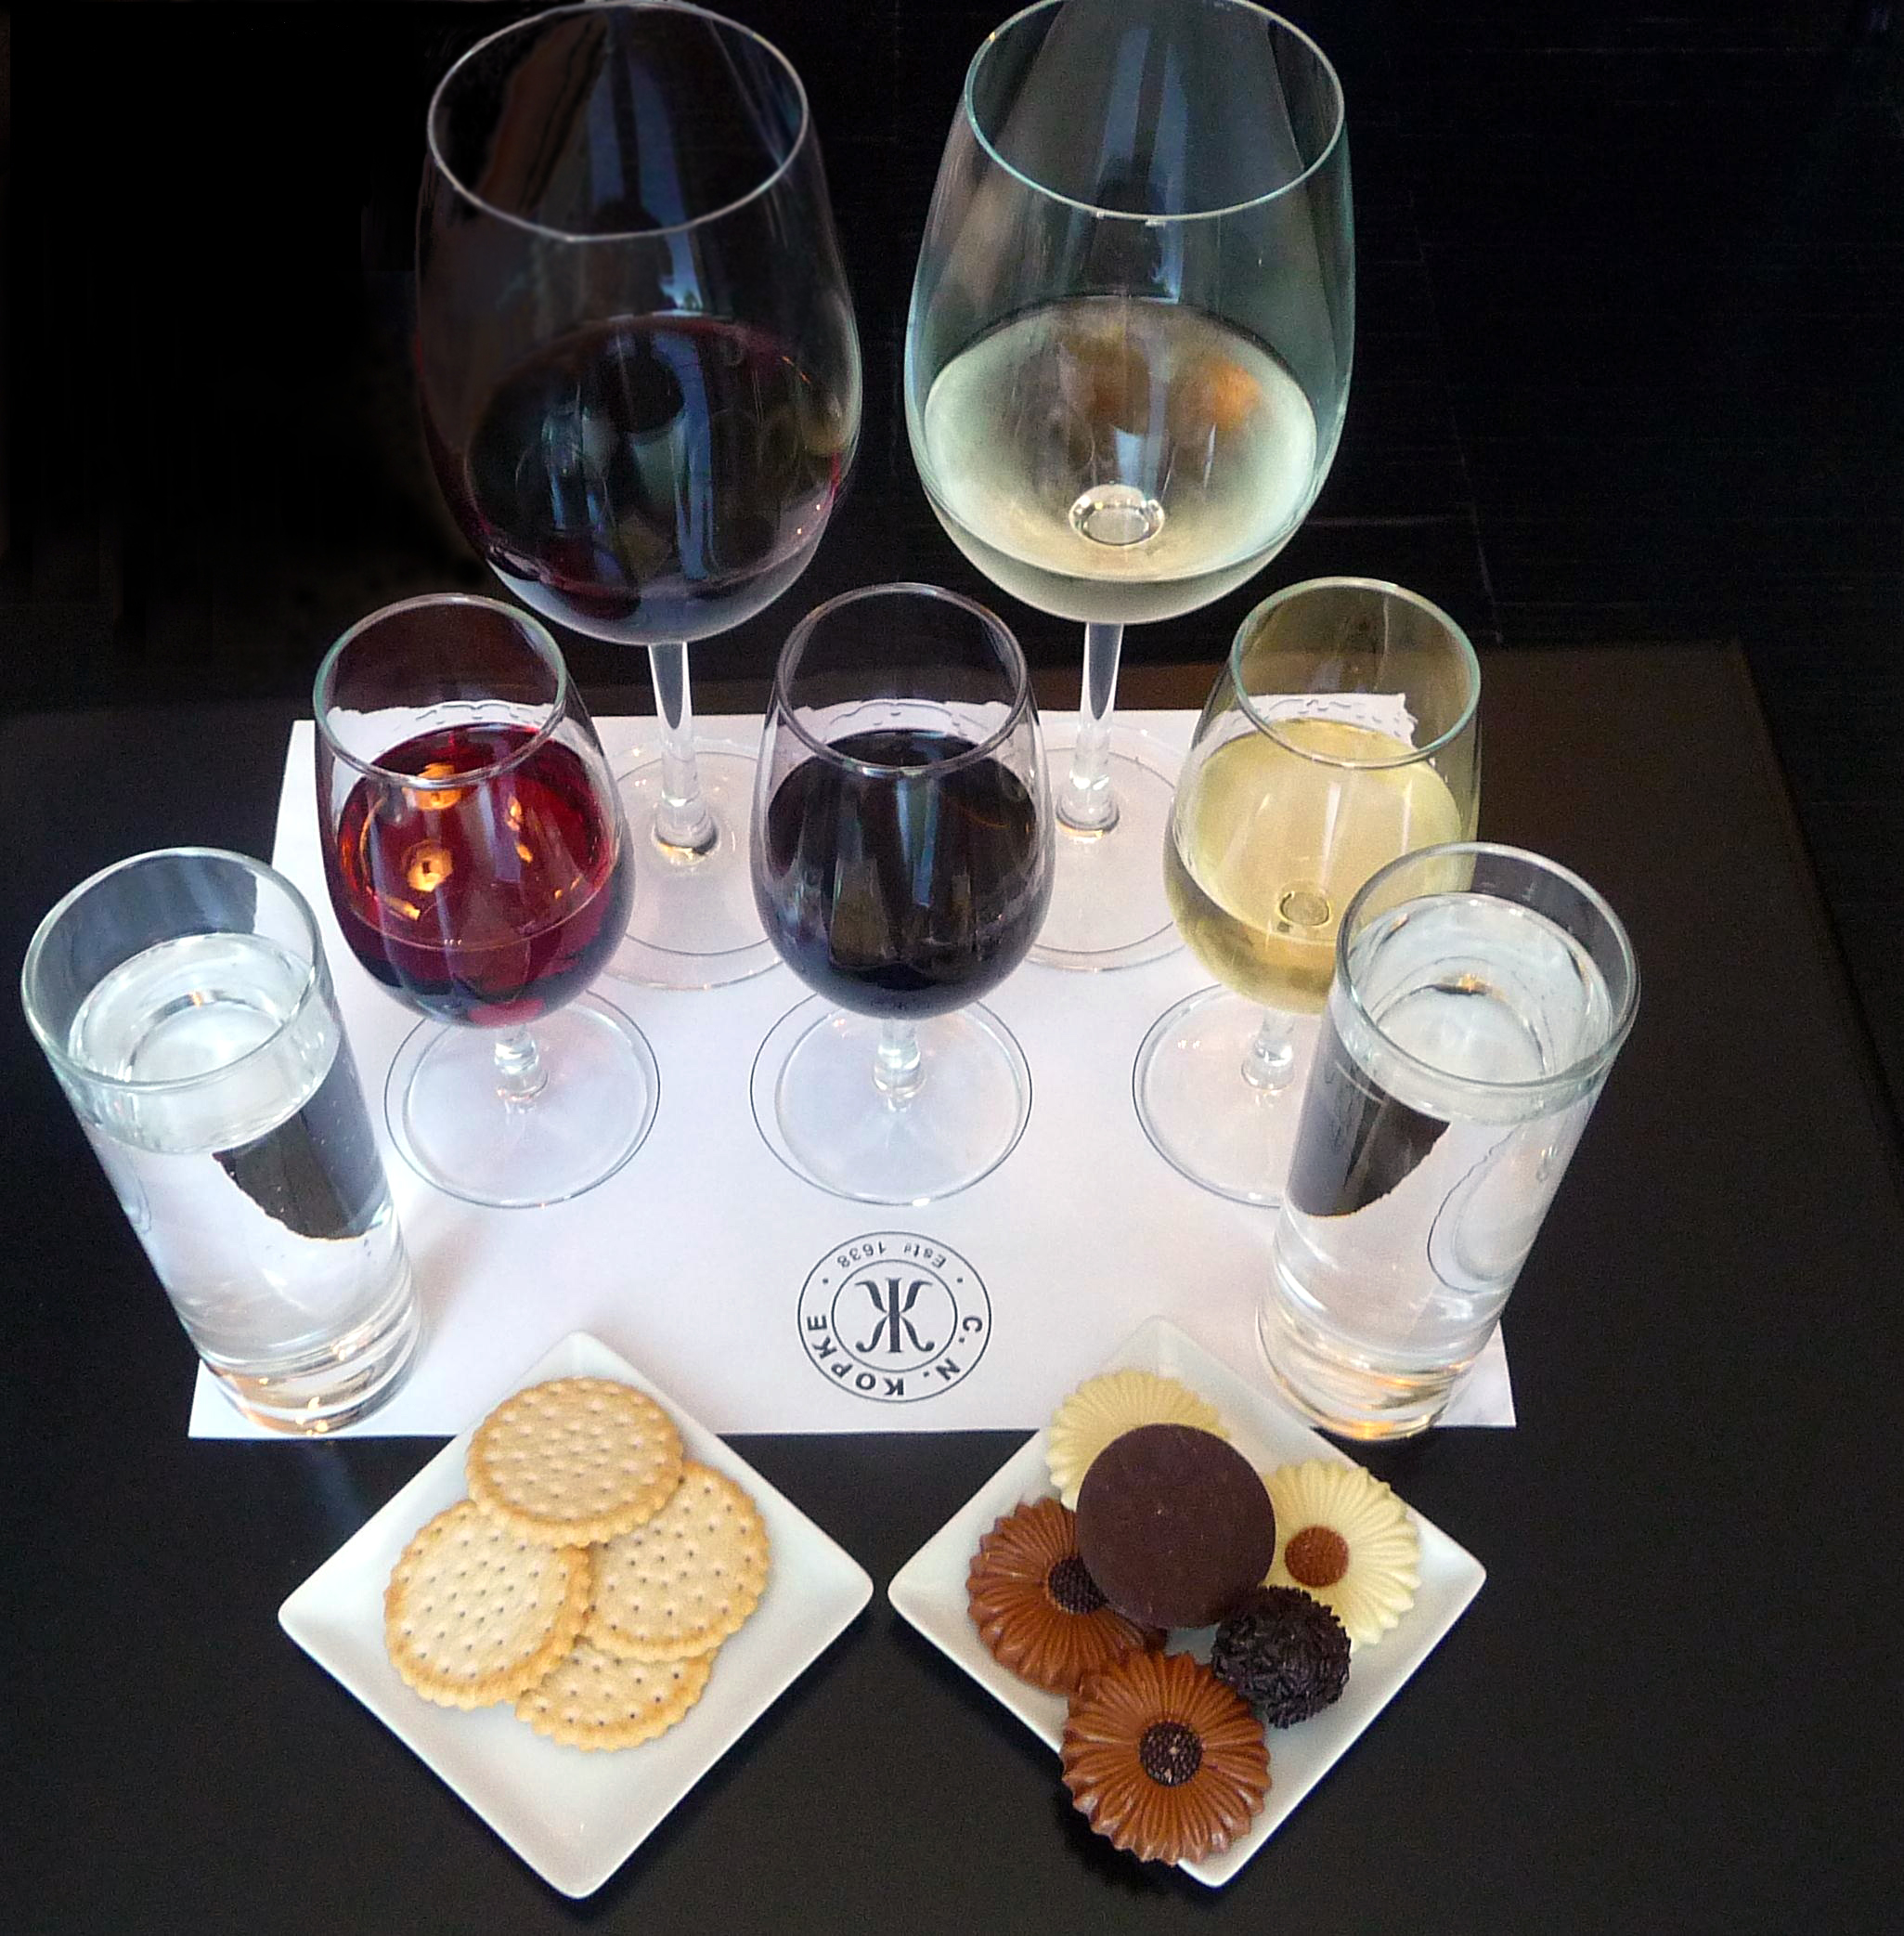 Kopke overlooks the entire waterfront of Vila de Gaia. This tasting option is an impressive plate filled with a red wine, white wine and five ports paired with crackers and chocolates as appropriate. Viki Eierdam